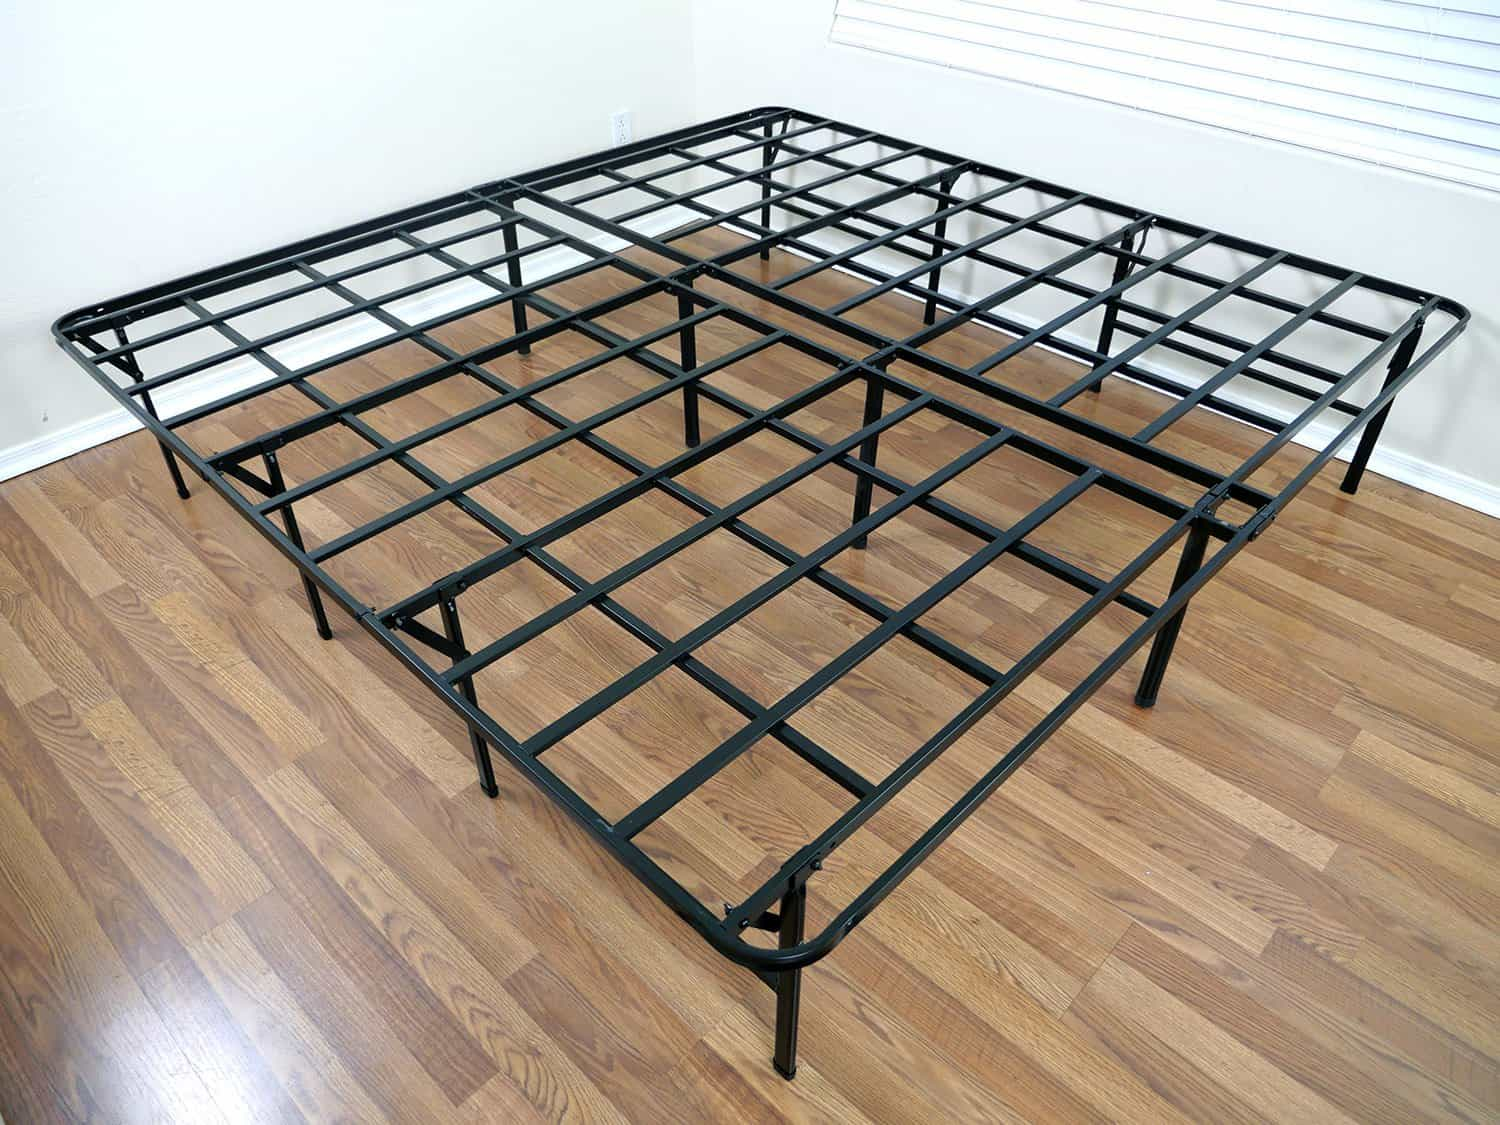 Purple Platform Bed Frame Review Sleepopolis